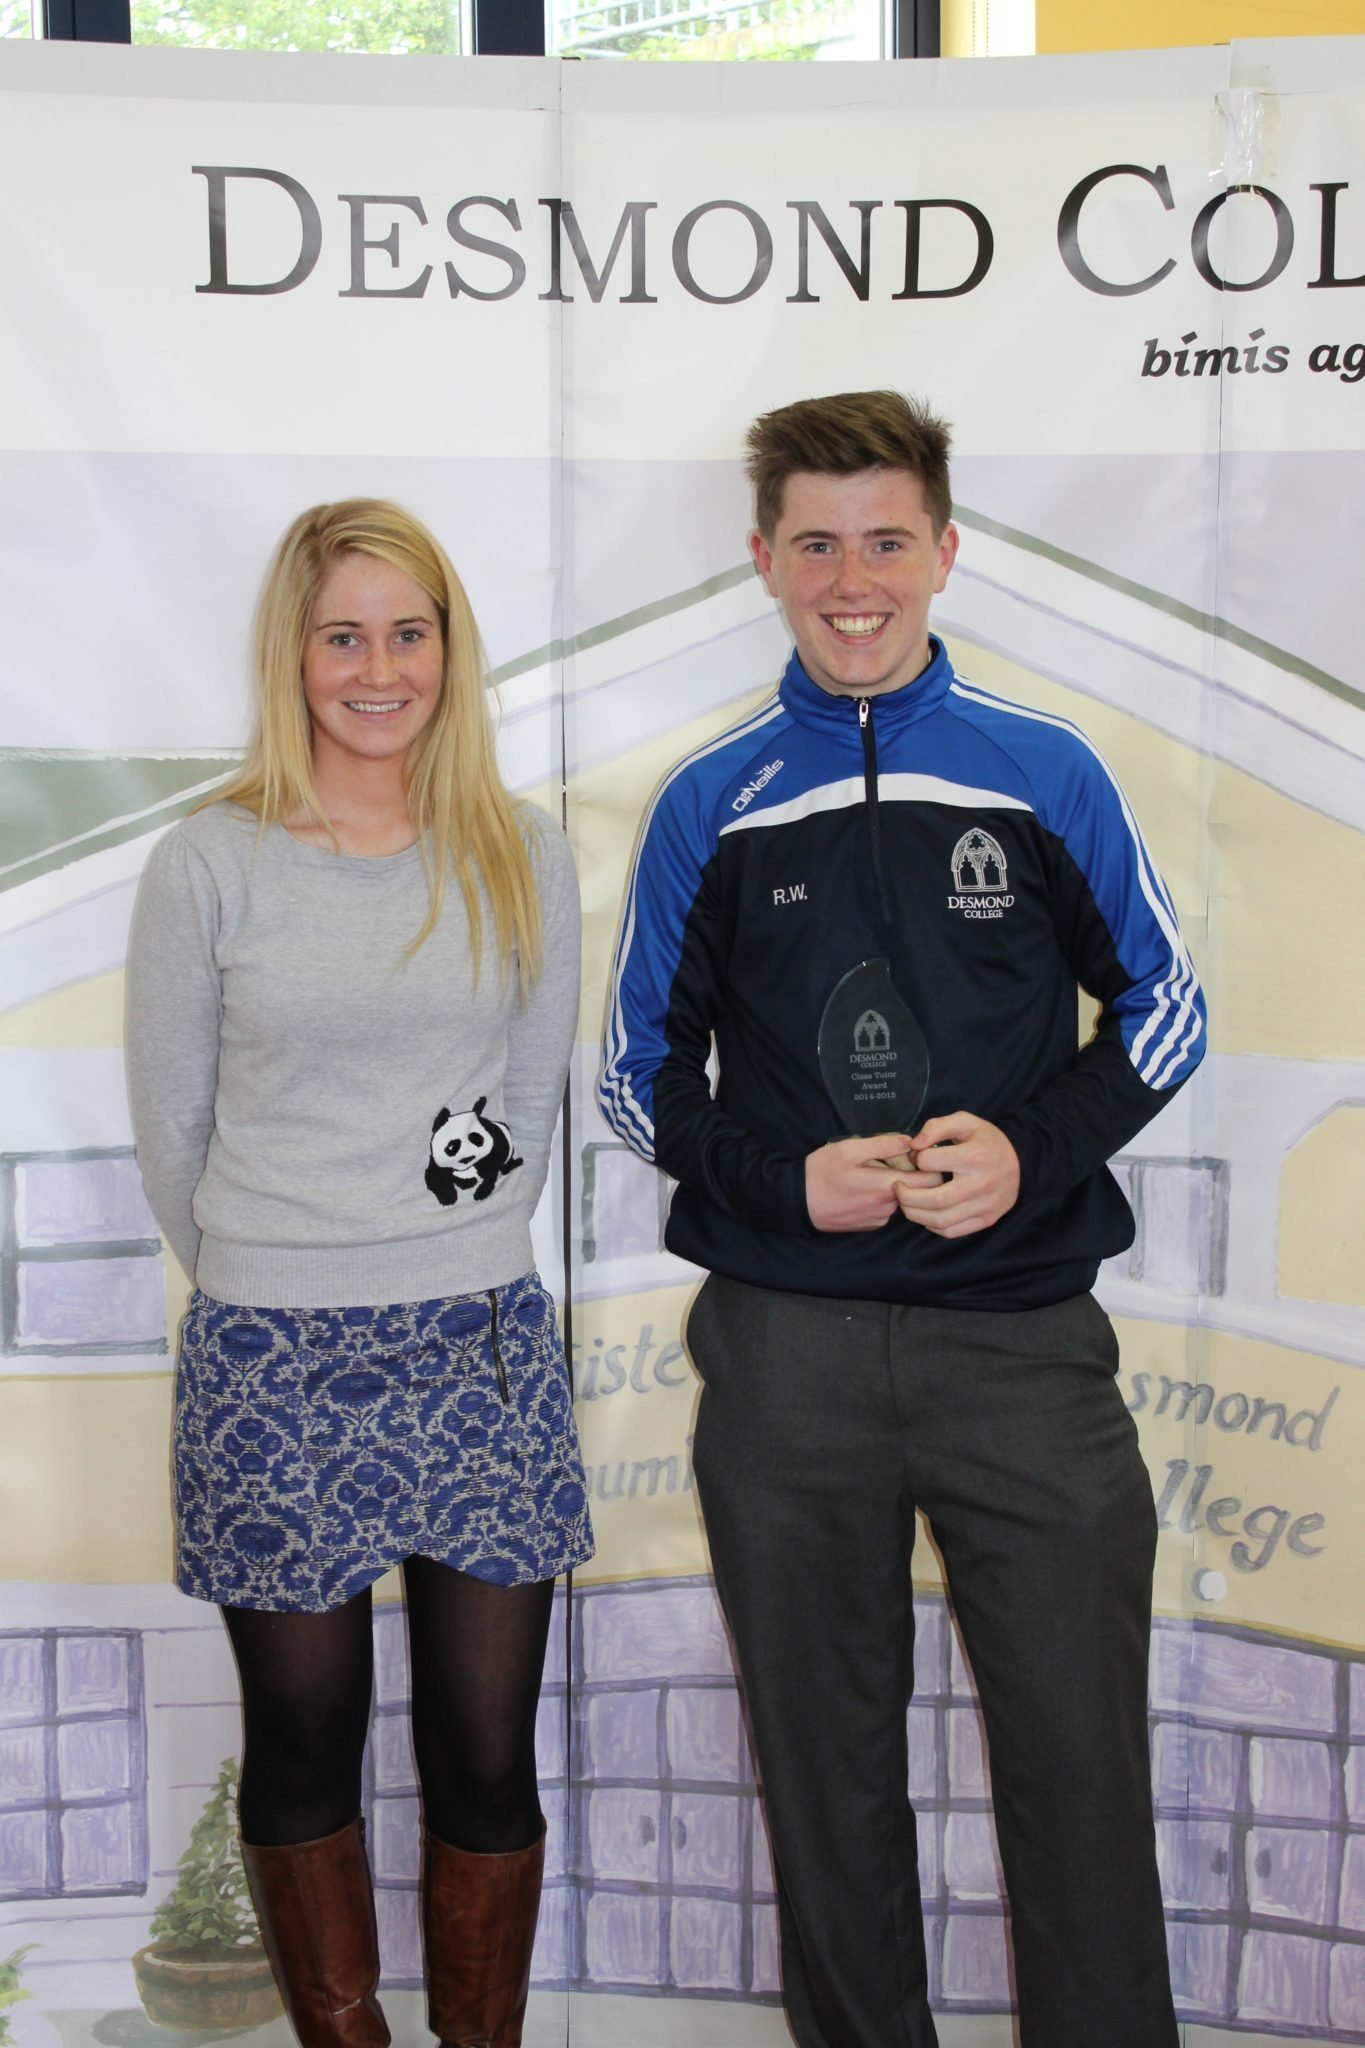 Desmond College Student Awards: May 2015: TUTOR AWARDS 3rd Year : Ms O'Doherty with Ryan White